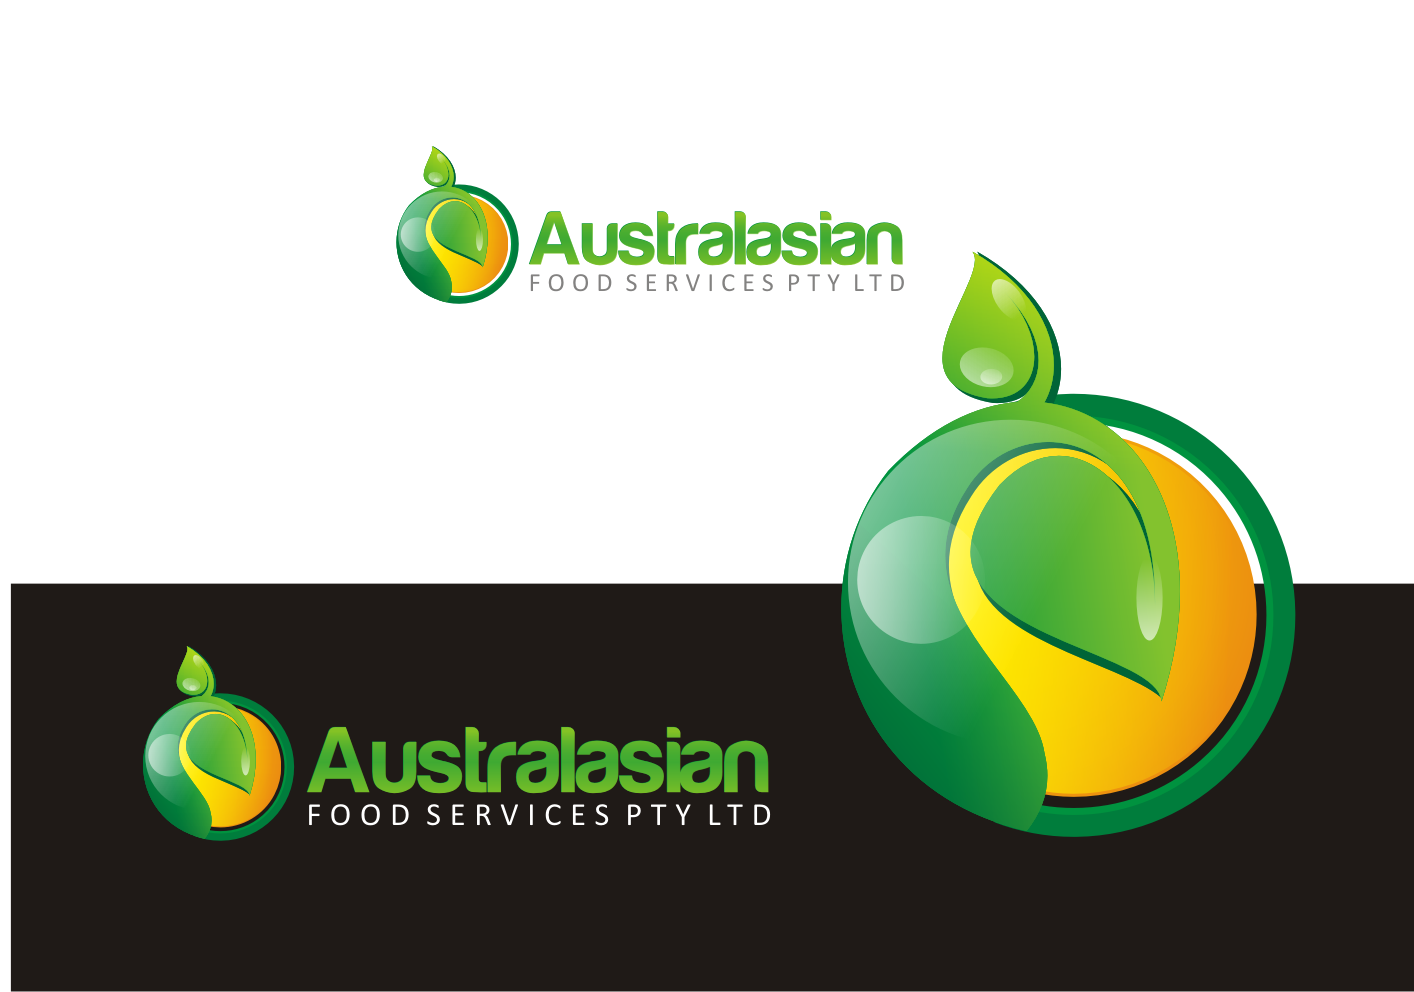 Help Australasian Food Services Pty Ltd with a new logo